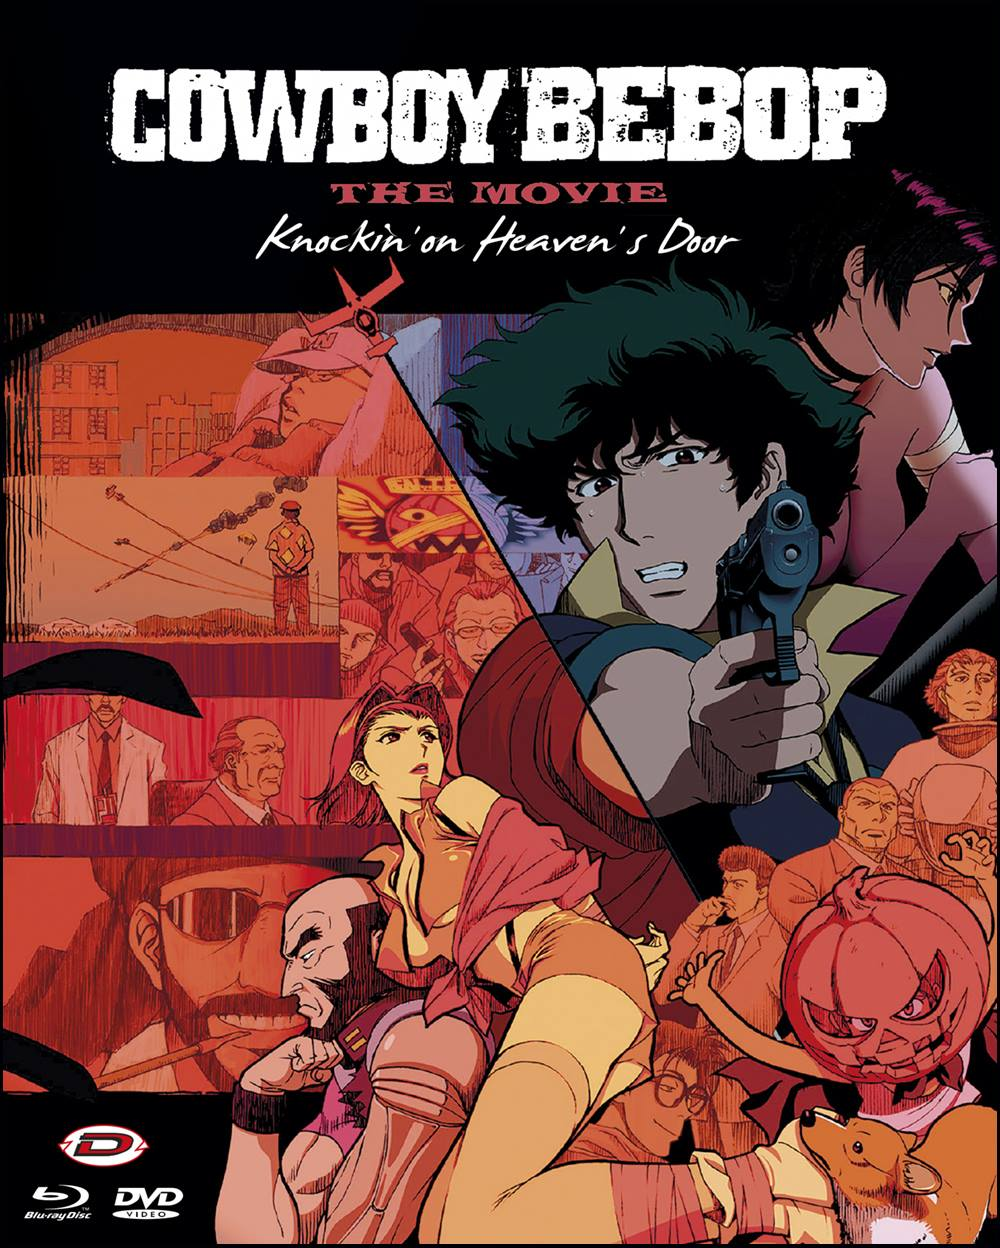 Dynit annuncia la nuova distribuzione di Cowboy Bebop - Knockin'on Heaven's Door thumbnail